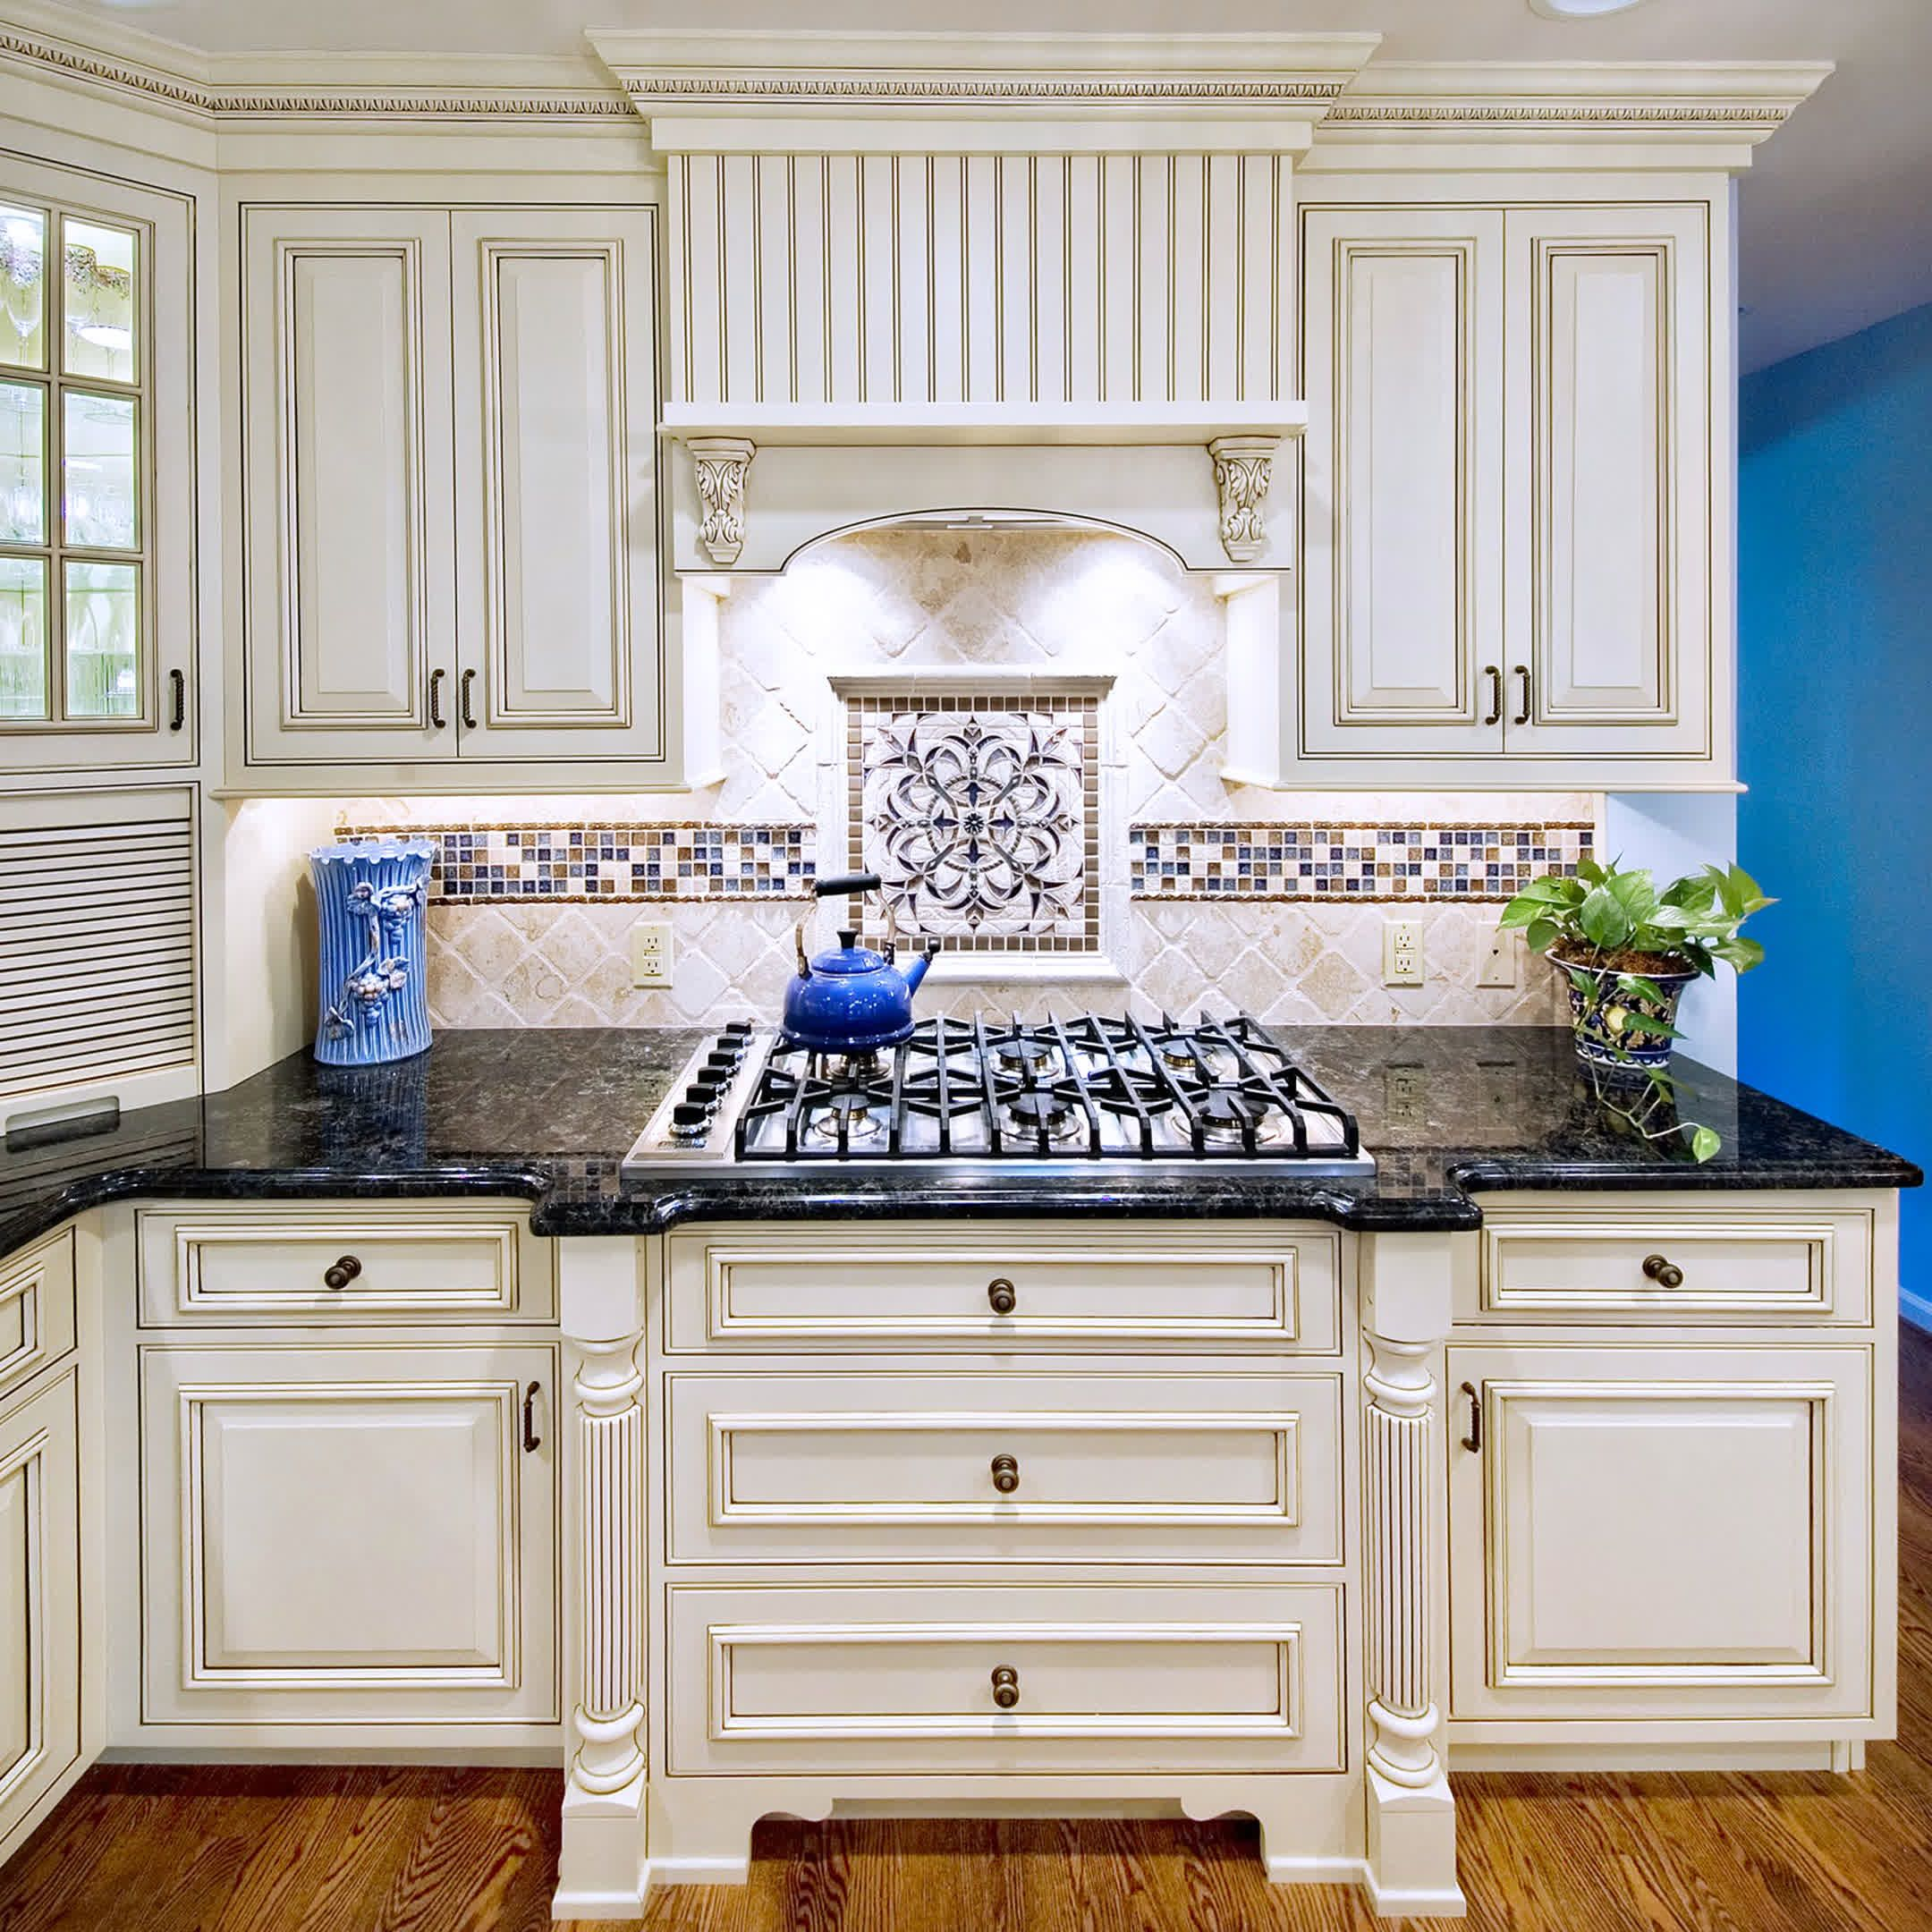 Blue Tile Backsplash Kitchen Renew Cabinets Countertops Ideas